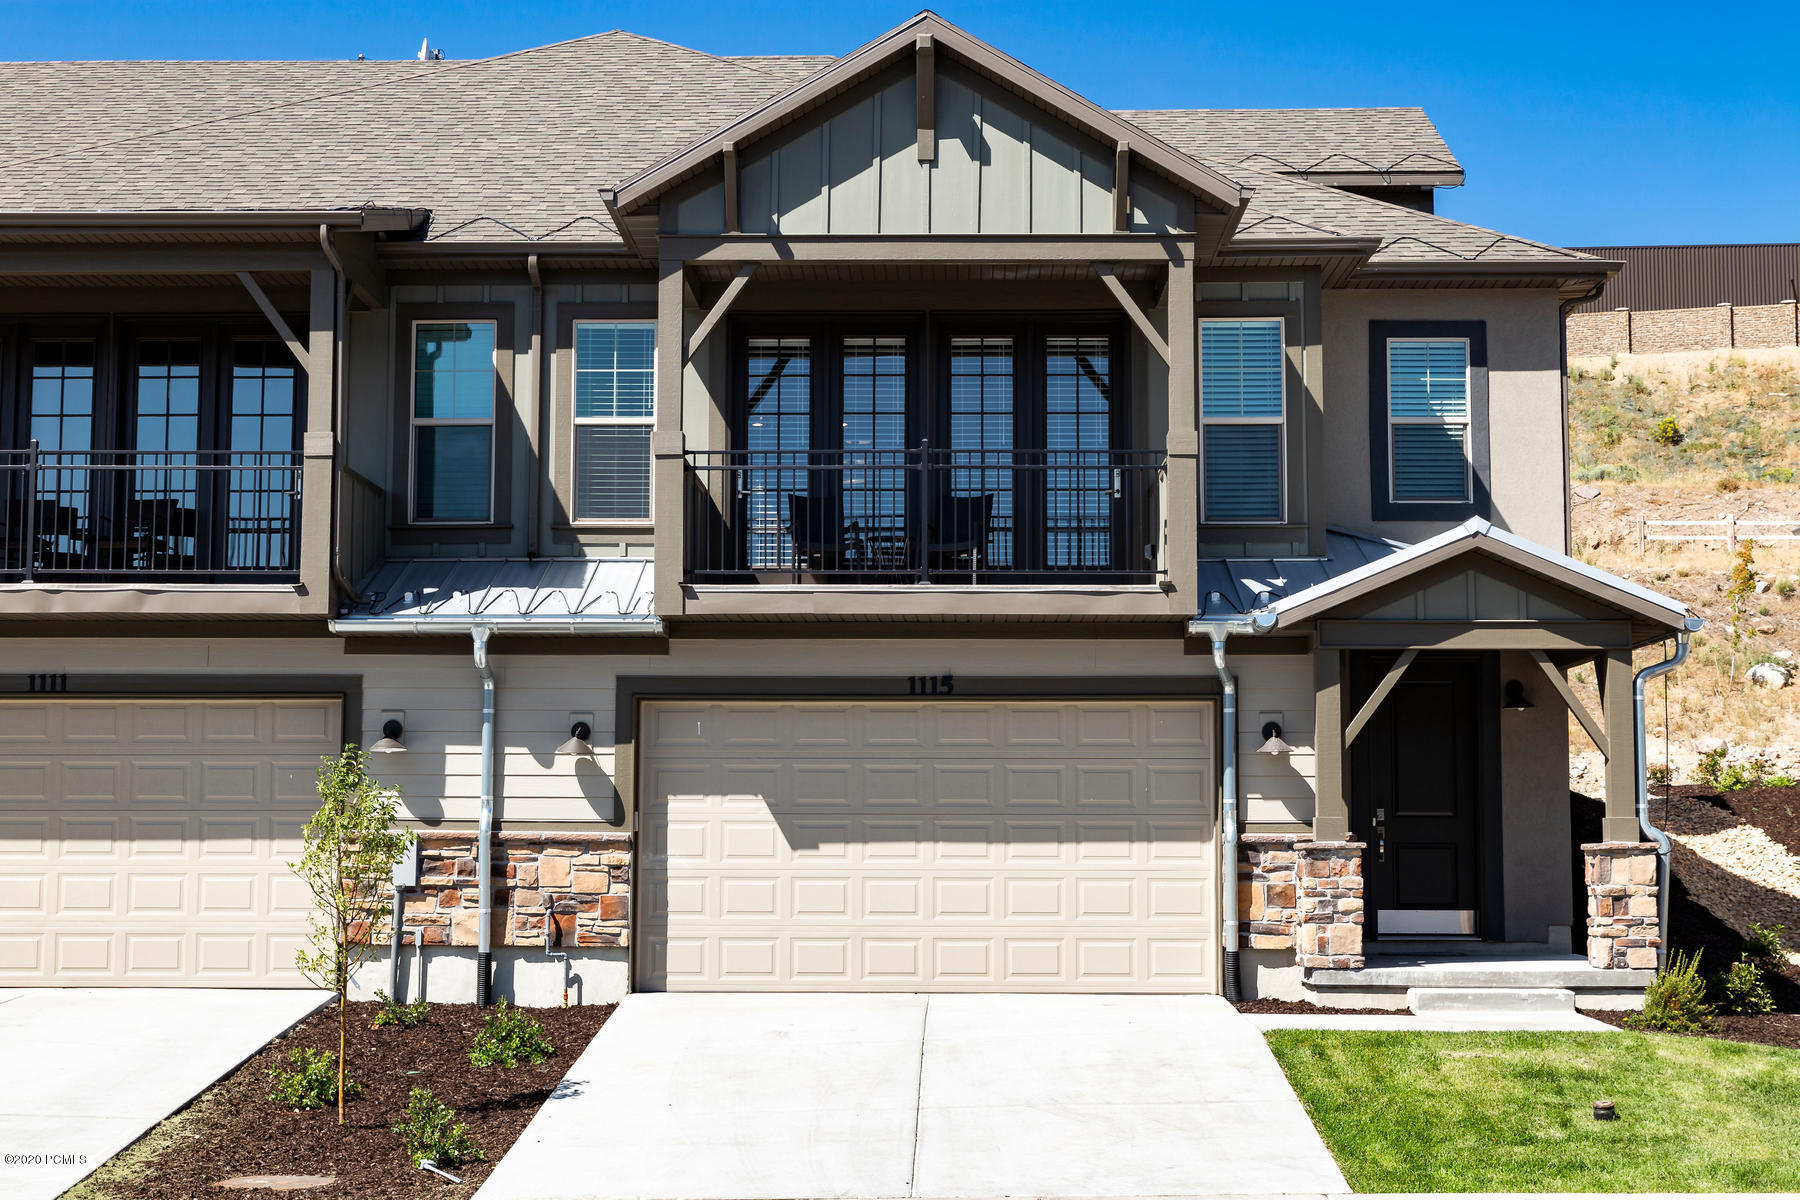 13746 Jordanelle Pkwy #J3, Heber City, Utah 84032, 4 Bedrooms Bedrooms, ,4 BathroomsBathrooms,Condominium,For Sale,Jordanelle Pkwy #J3,20190109112430415765000000